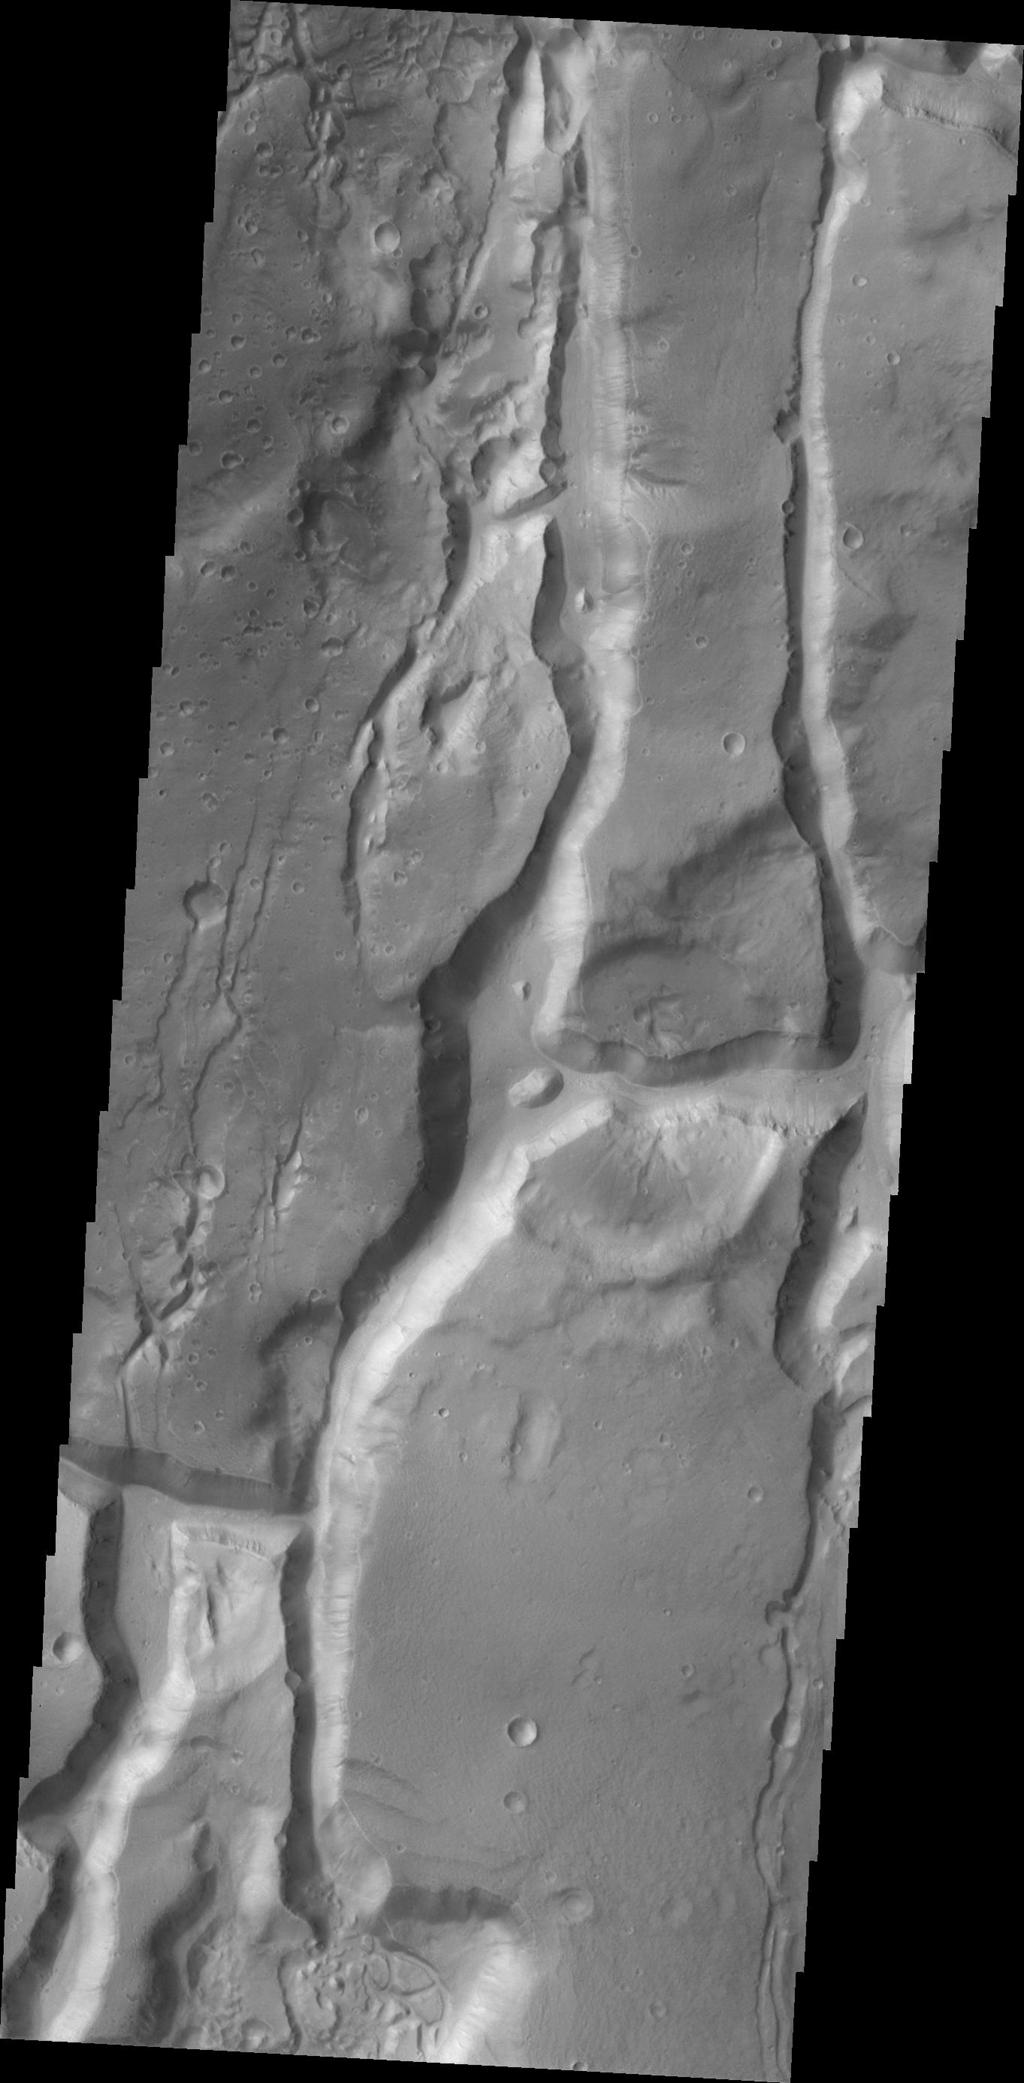 This image from NASA's 2001 Mars Odyssey highlights the fractured region of a portion of Cydonai Mensae.